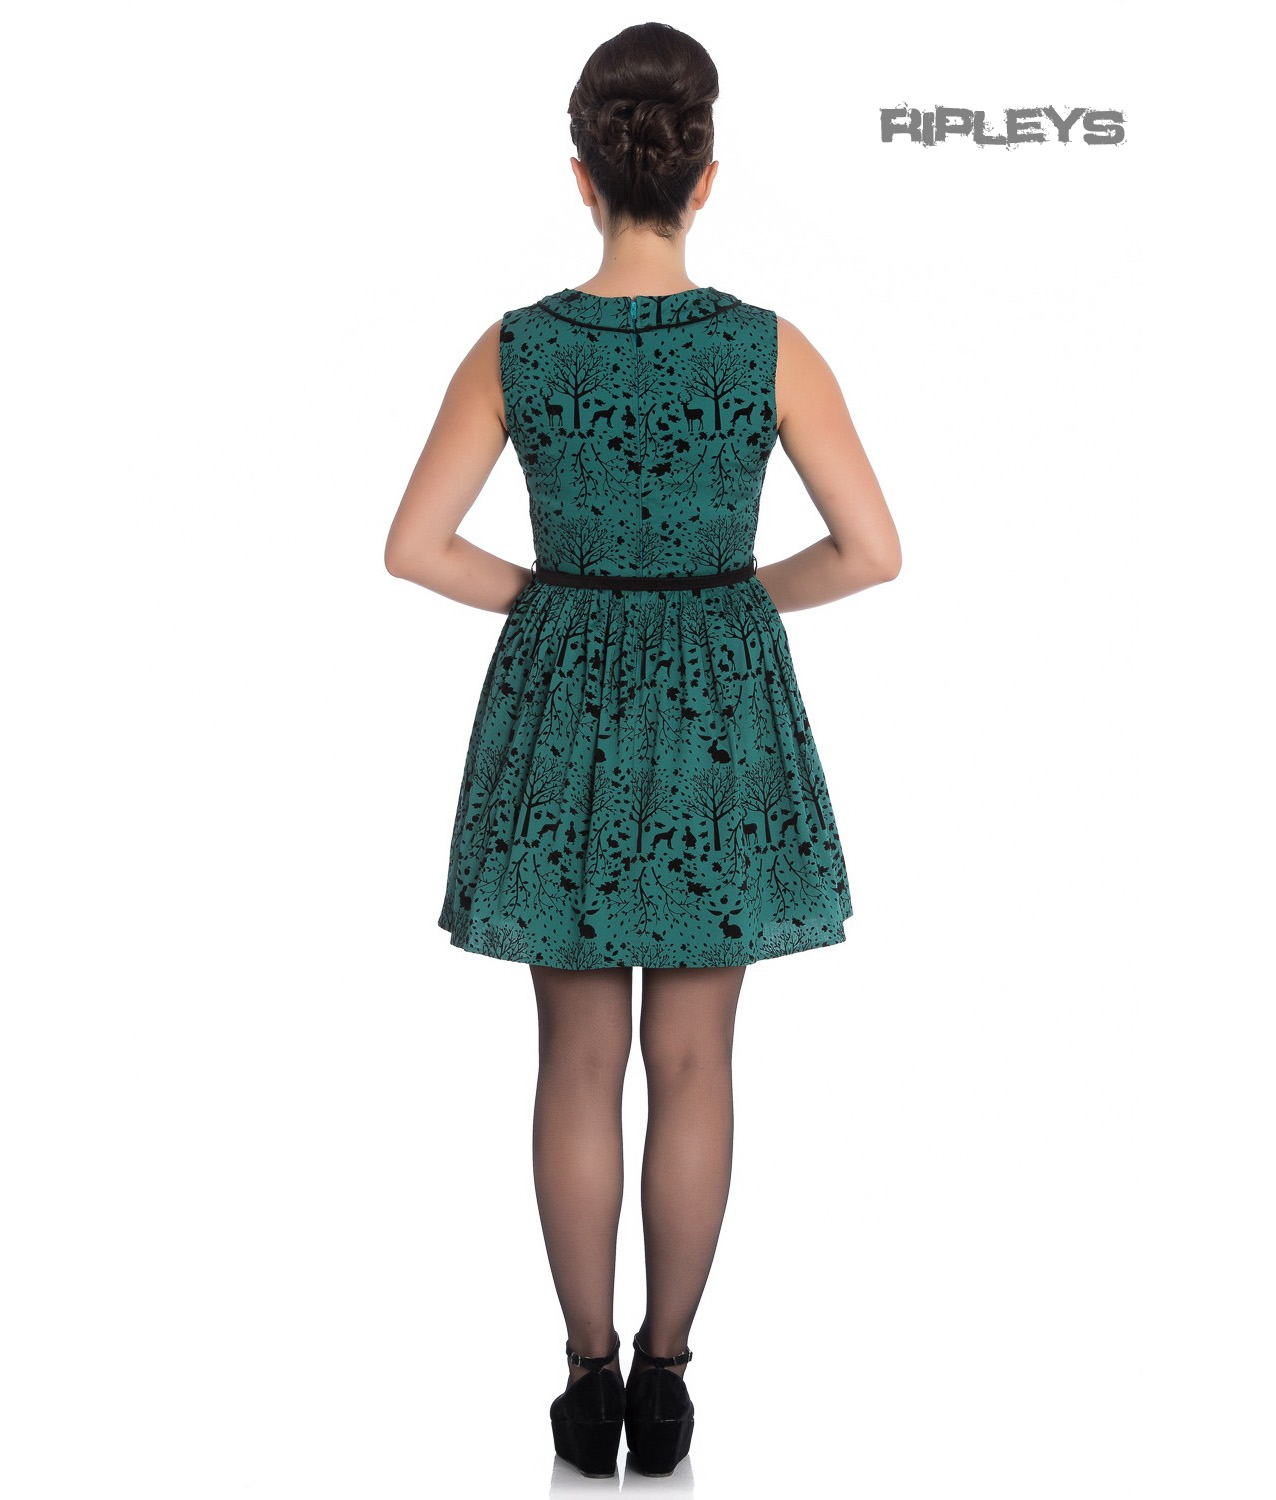 Hell-Bunny-50s-Mini-Skater-Dress-Woodland-Trees-SHERWOOD-Dark-Green-All-Sizes thumbnail 16